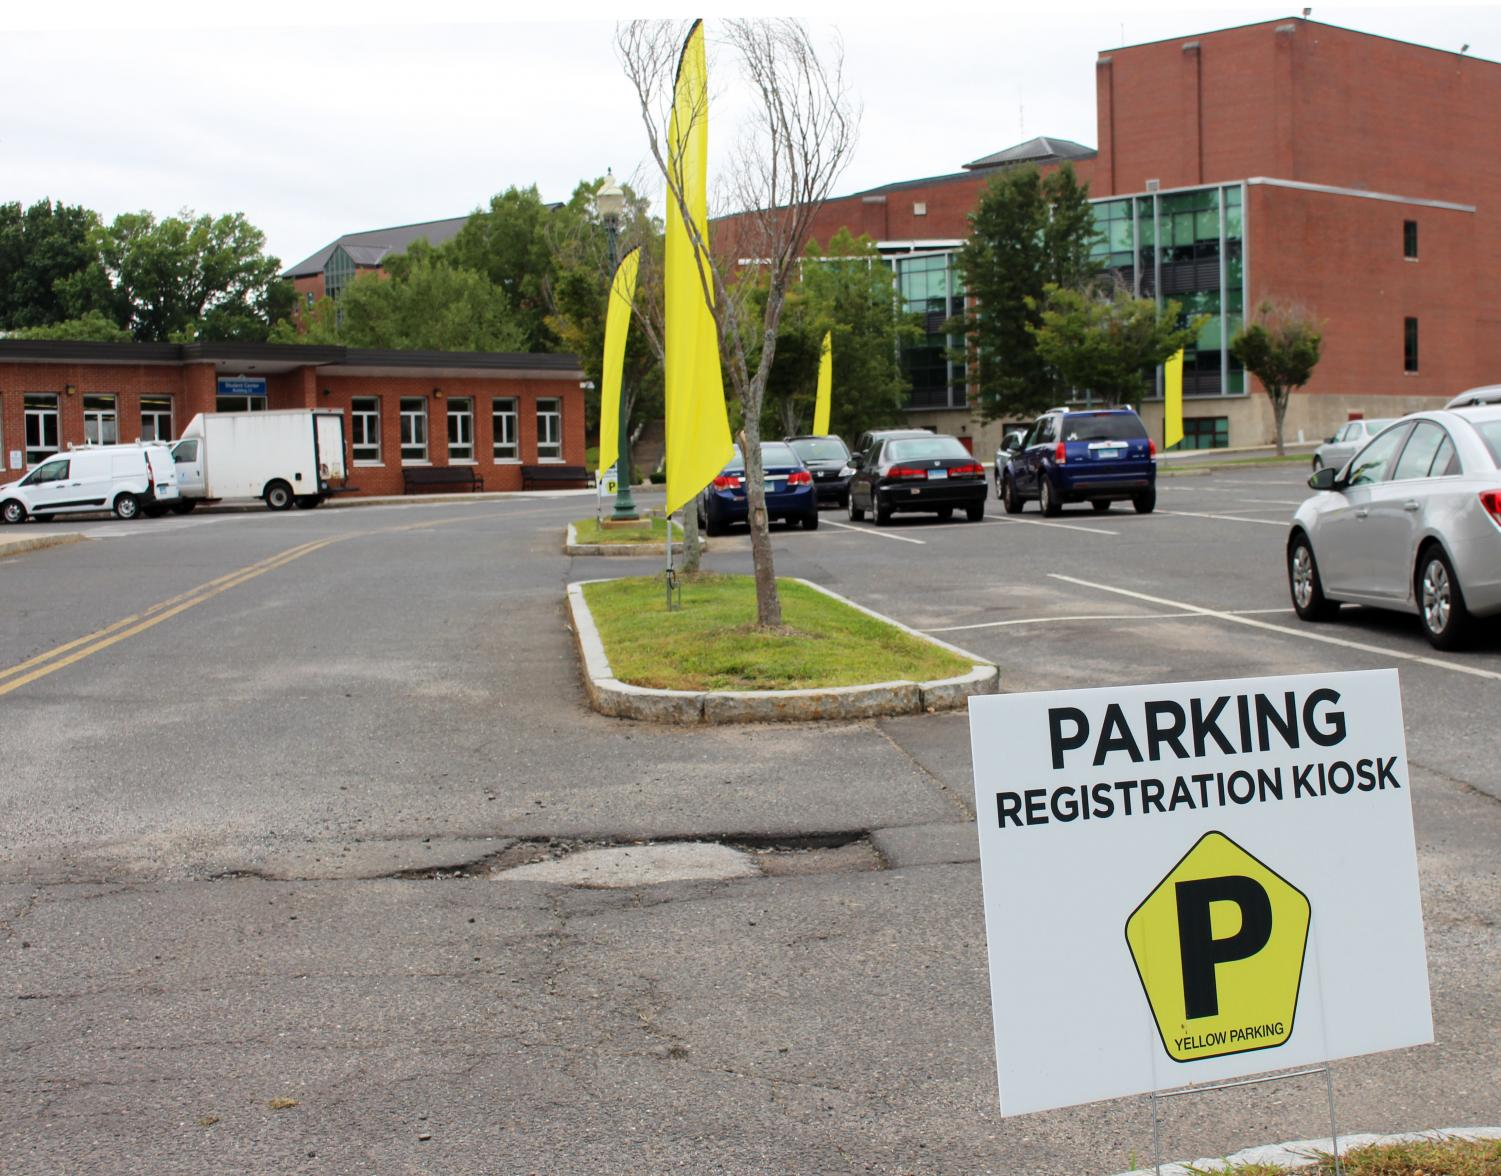 Central's new parking system has been met with mixed reactions.